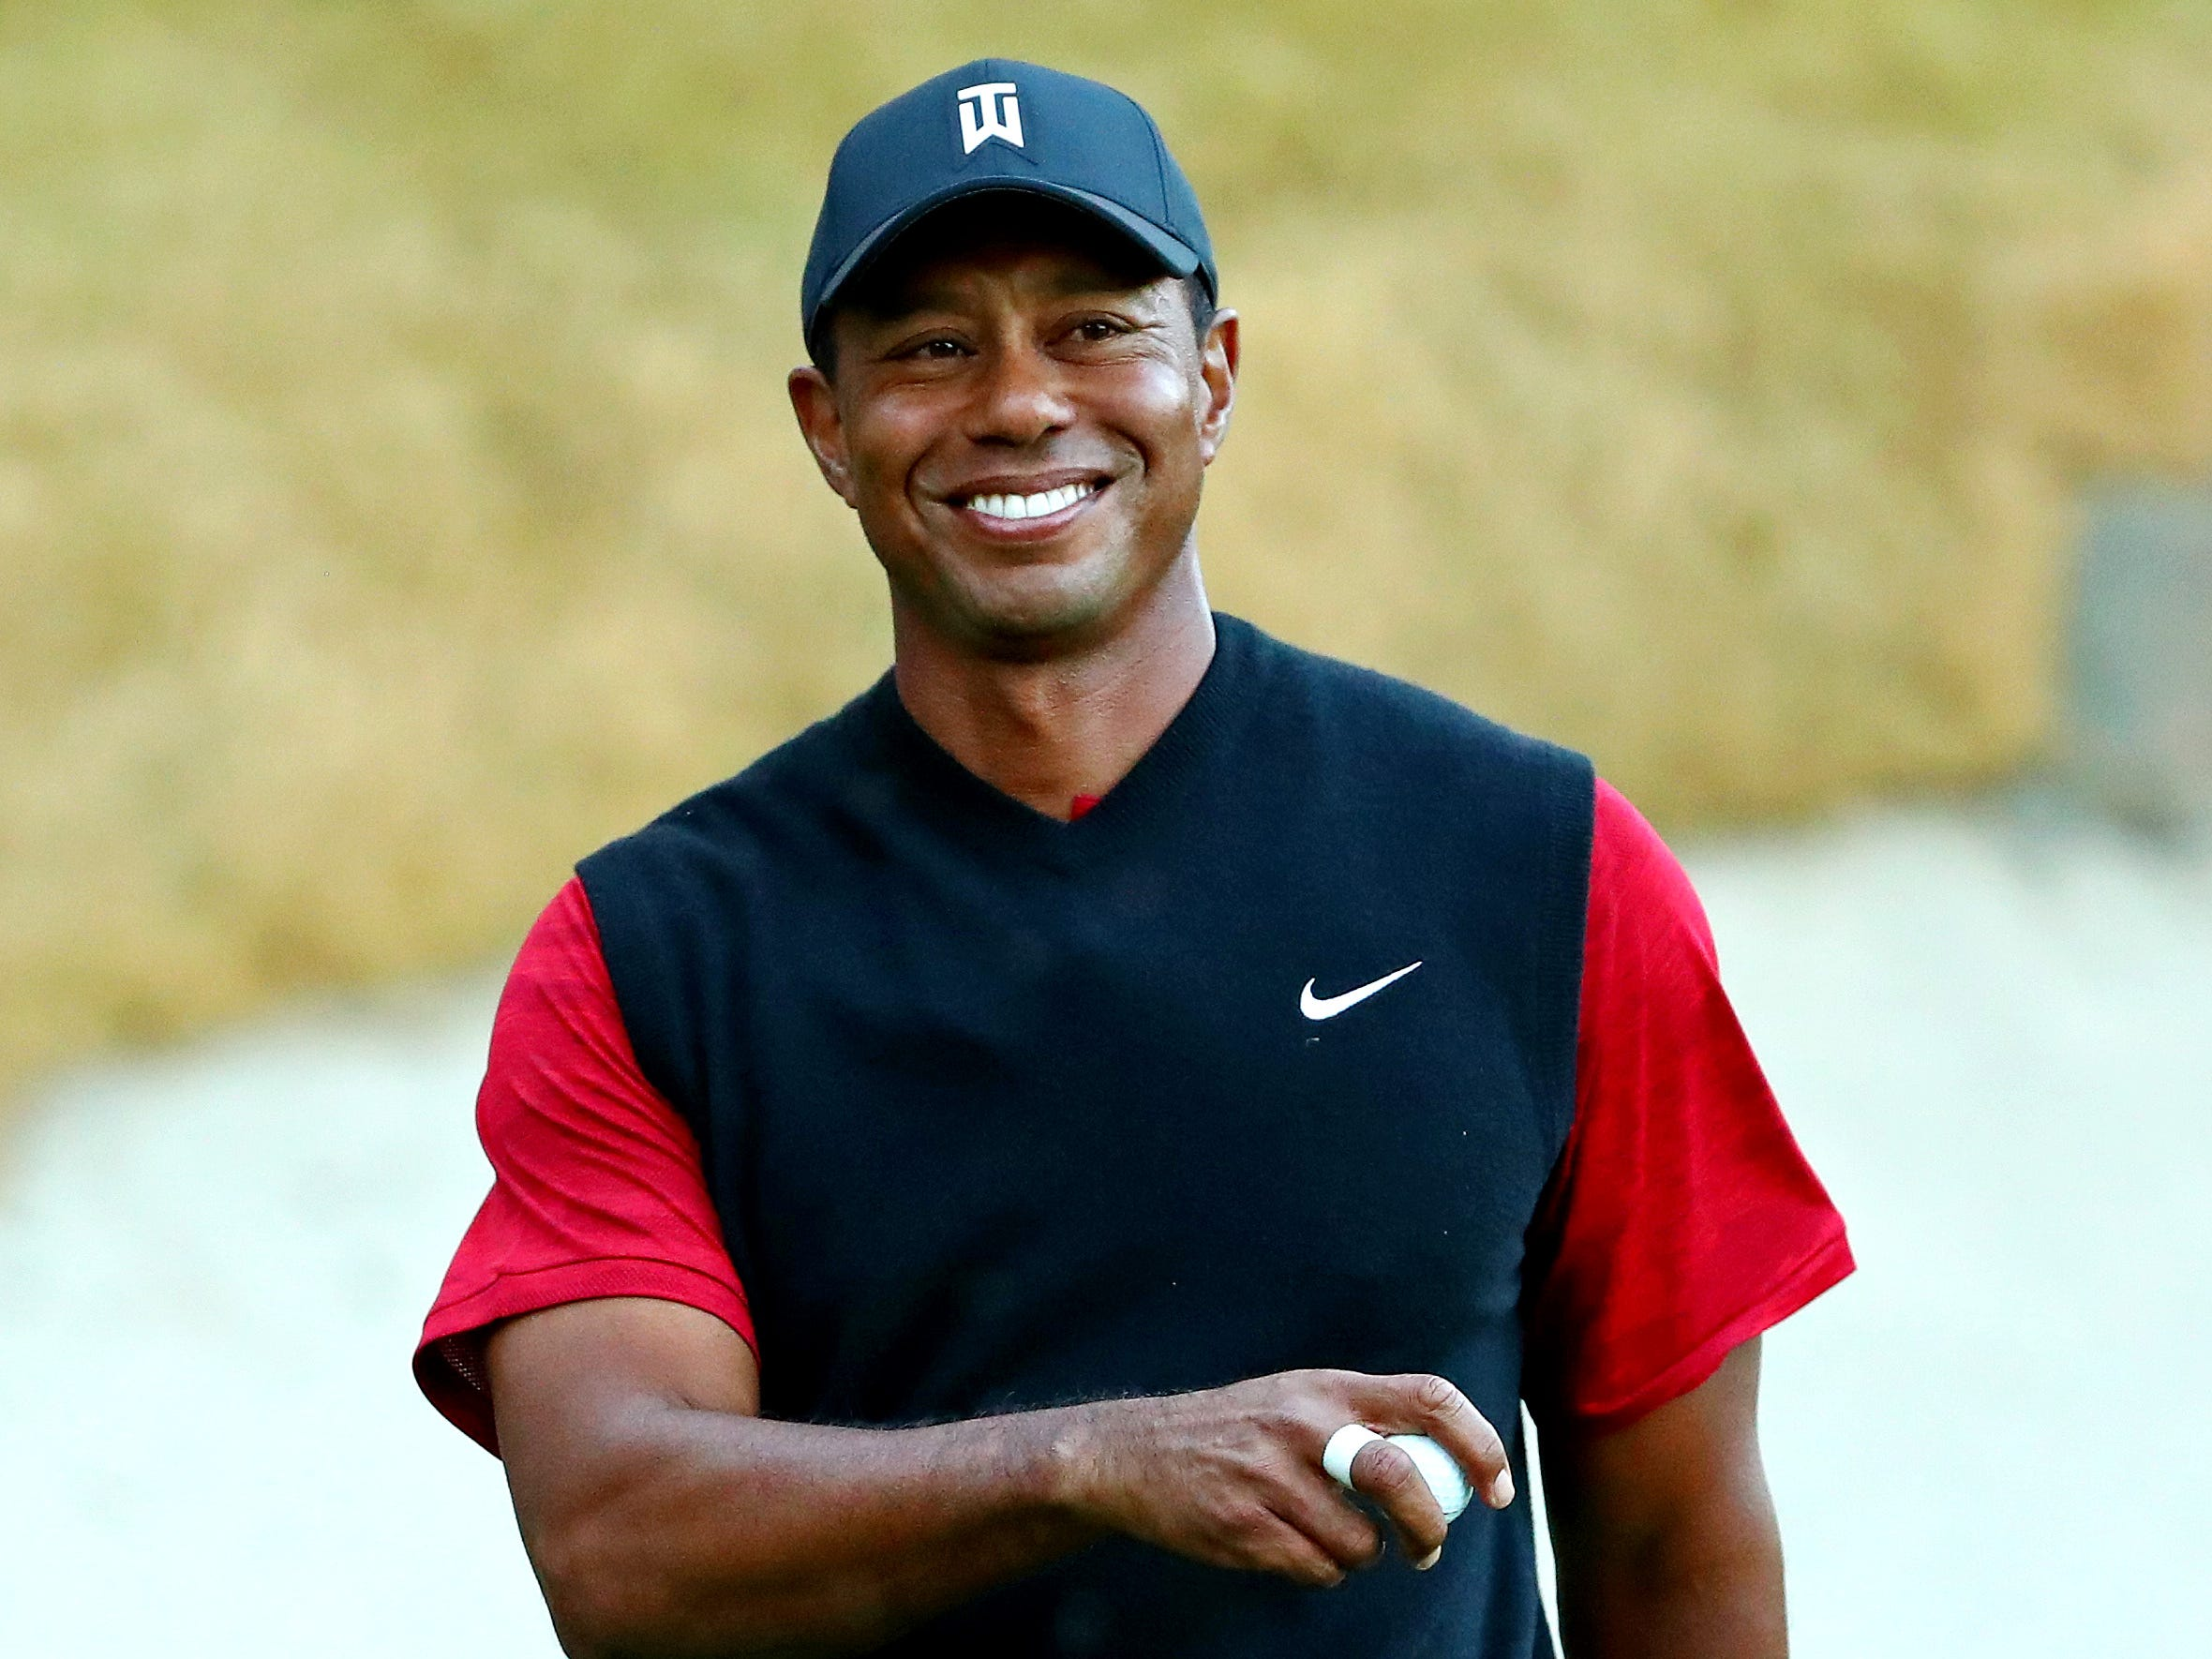 On his 43rd birthday, 43 reasons why Tiger Woods will win another major title